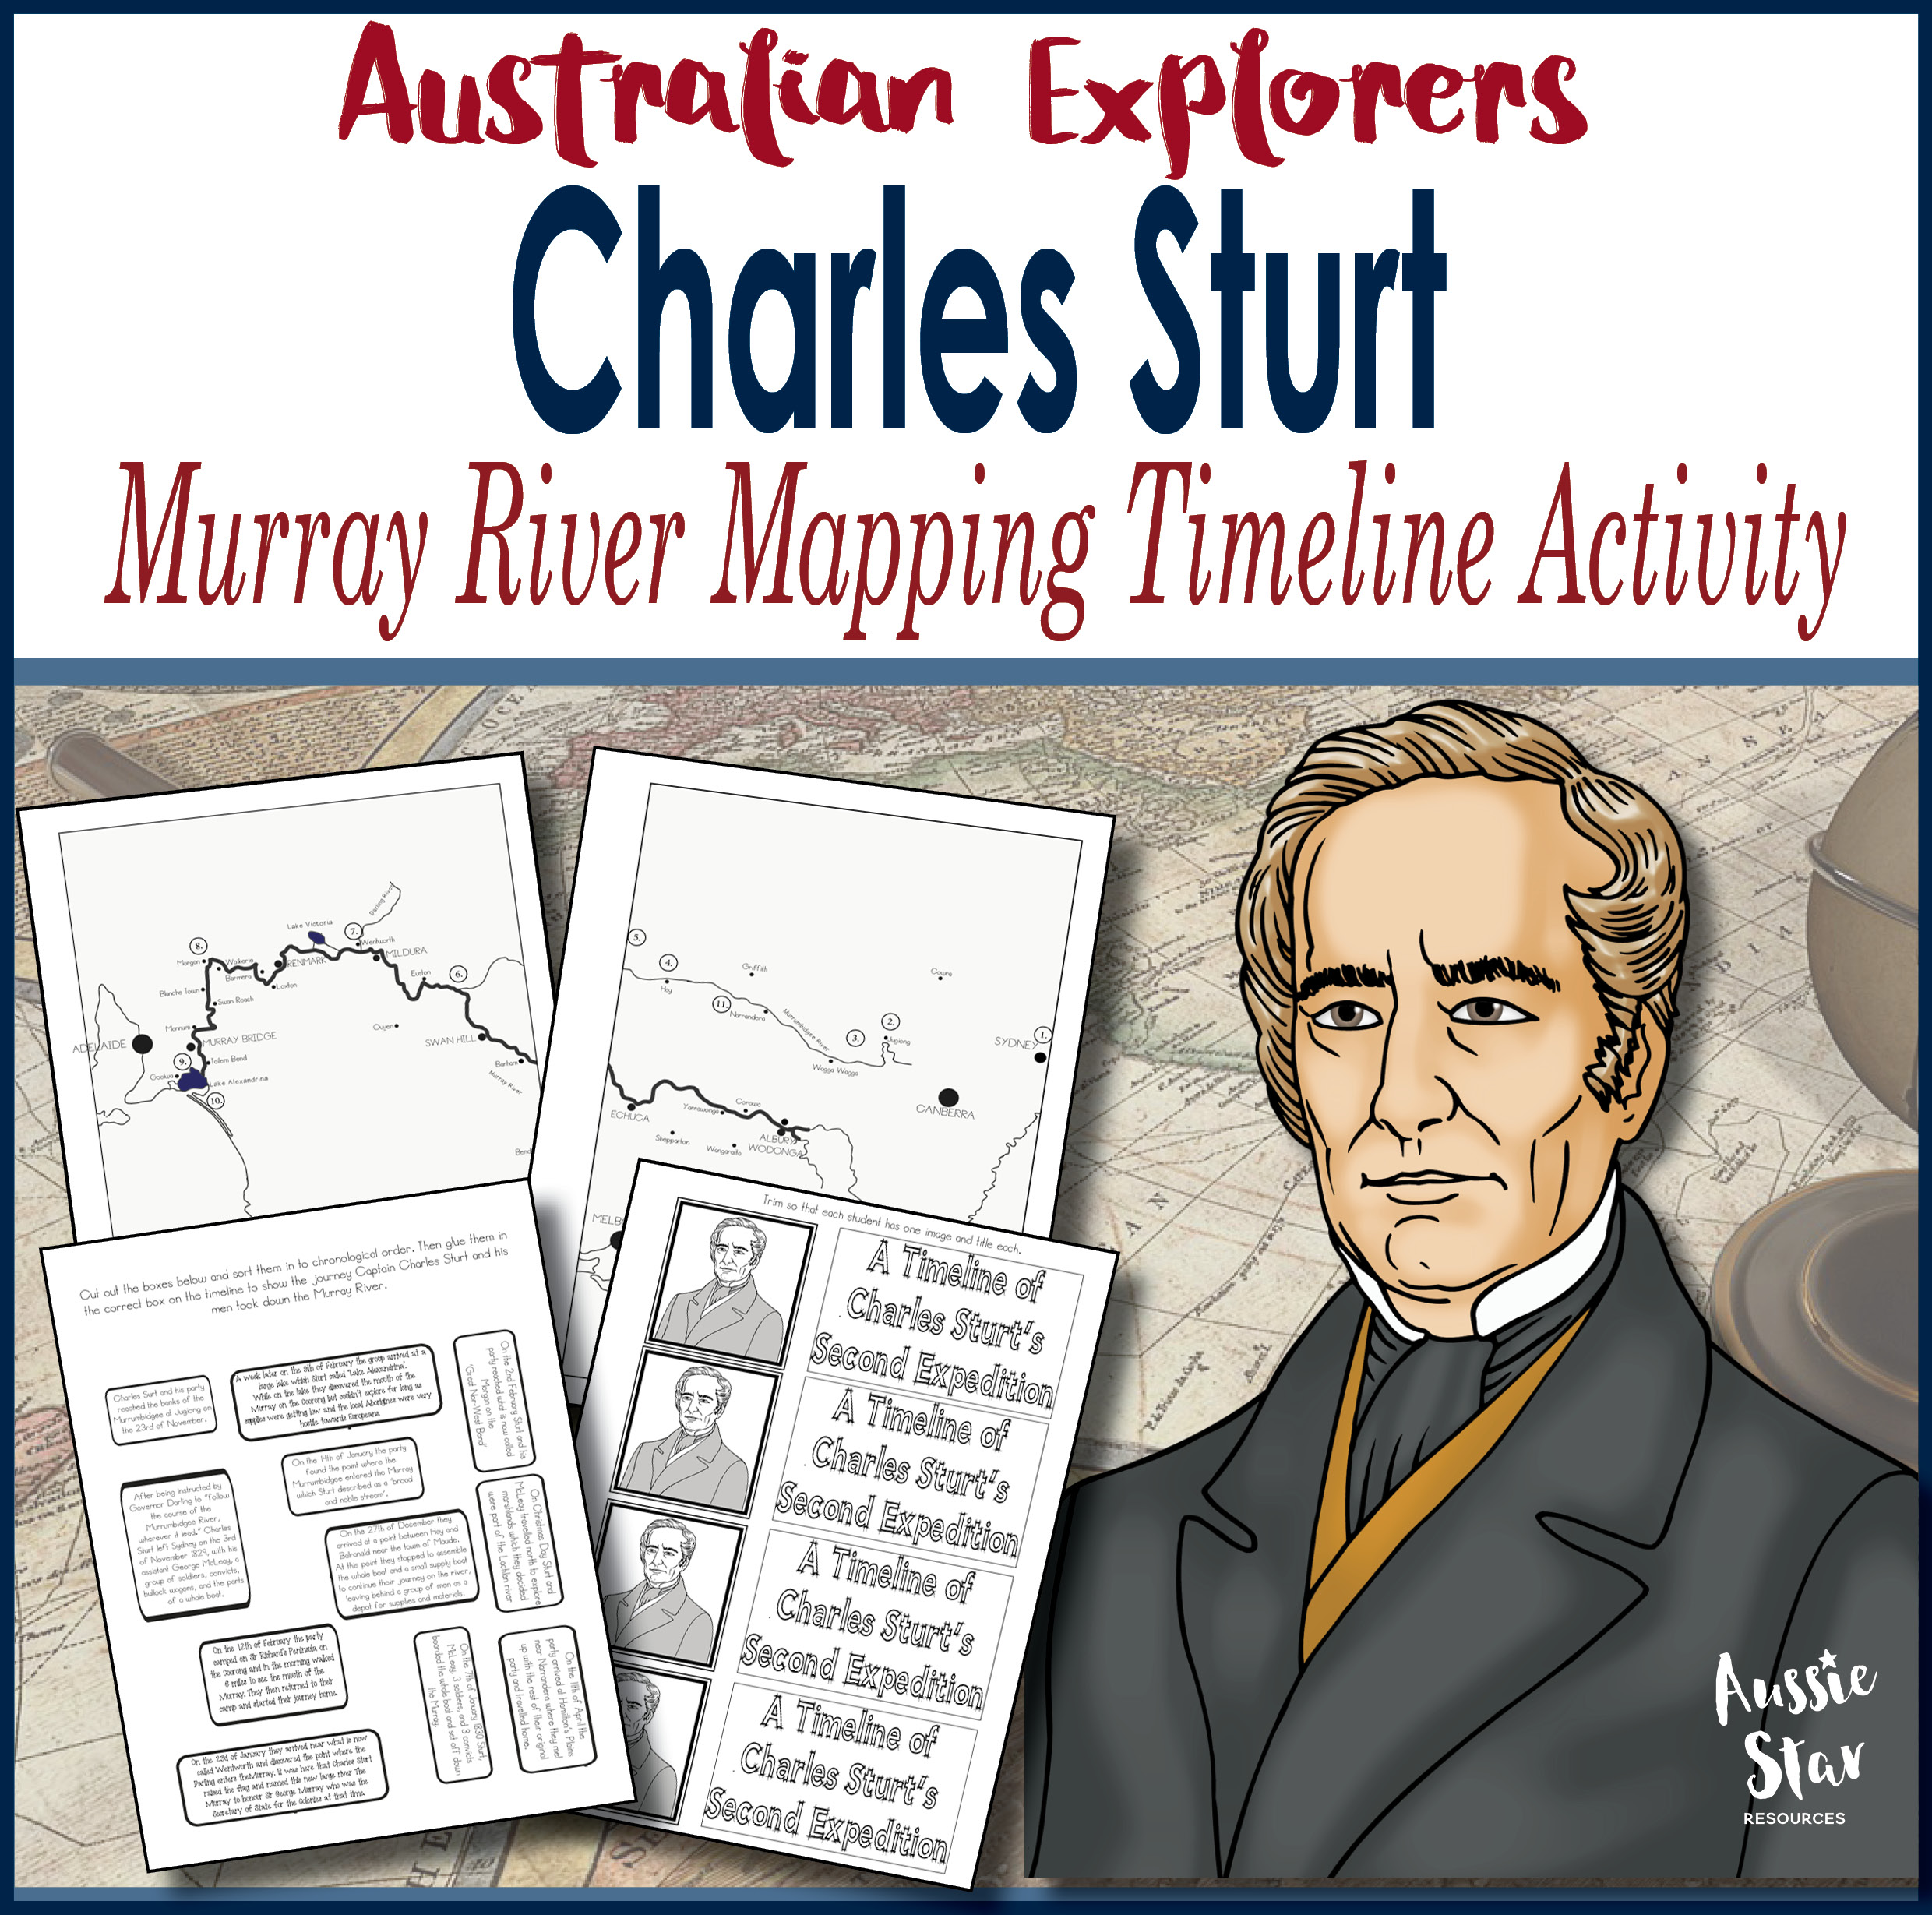 Charles Sturt Timeline Mapping Activity